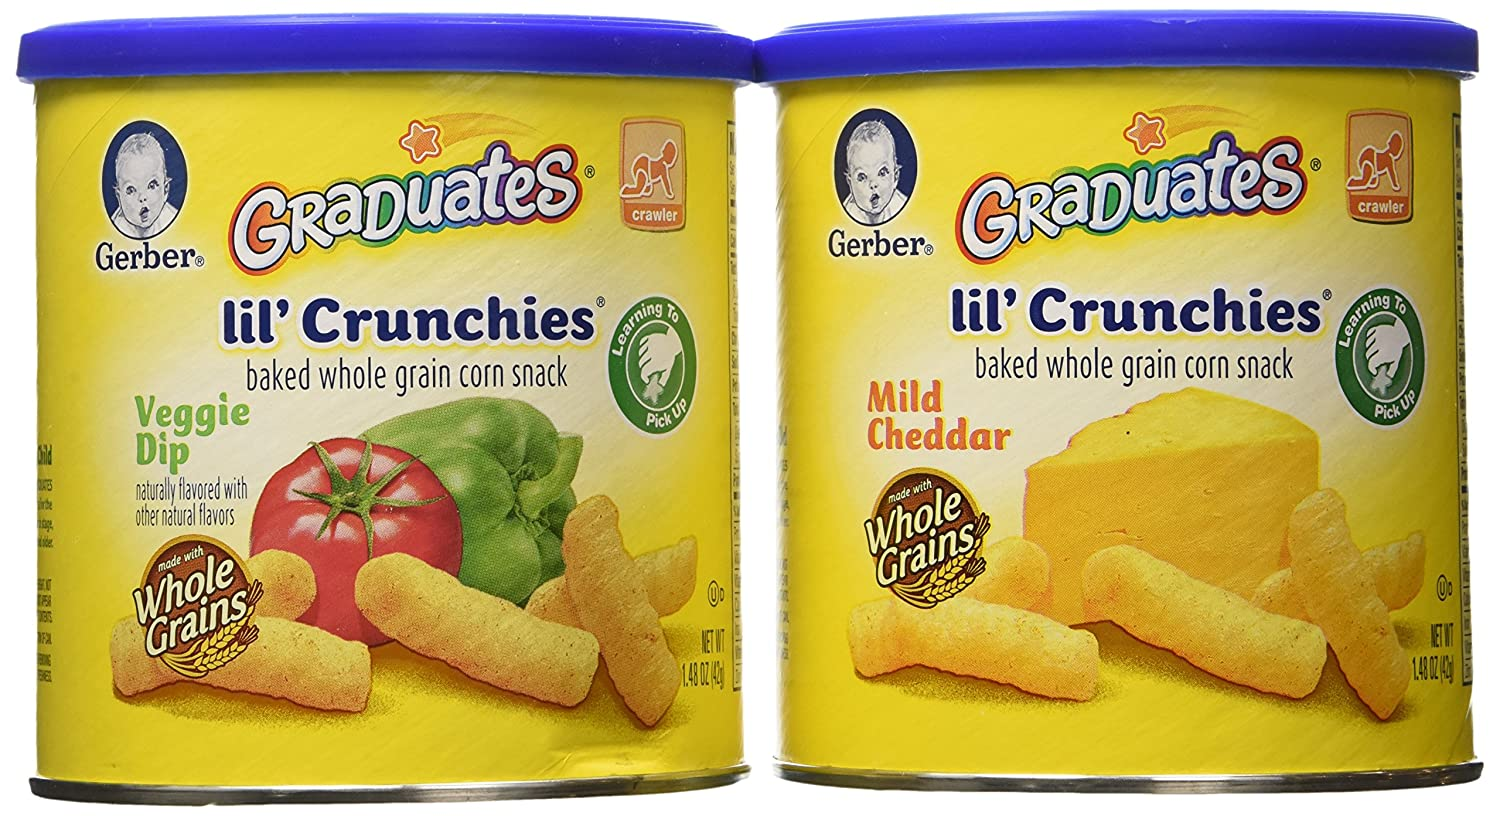 Gerber Graduates Lil Crunchies Net Weight 8.88-Ounce 6 Count Lake Hut Inc.